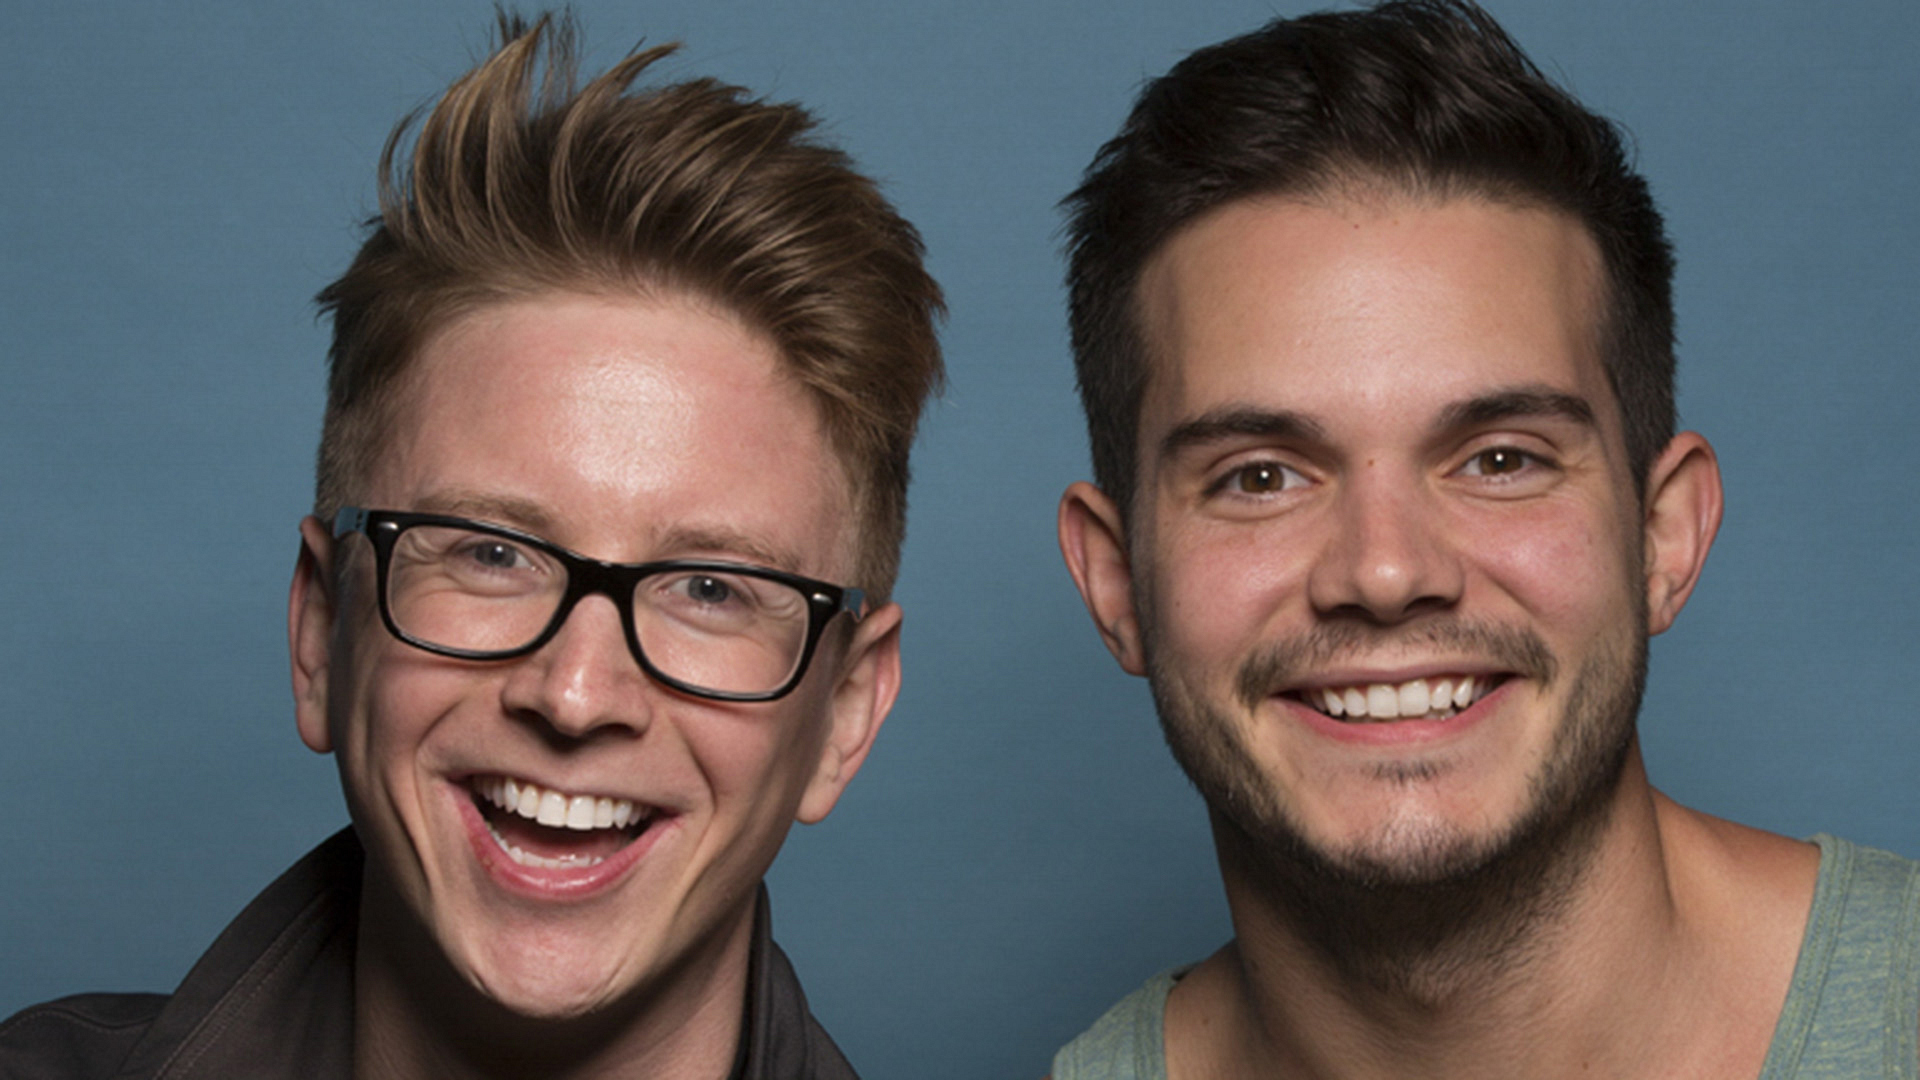 Tyler and Korey came in third place on Season 28 of The Amazing Race.